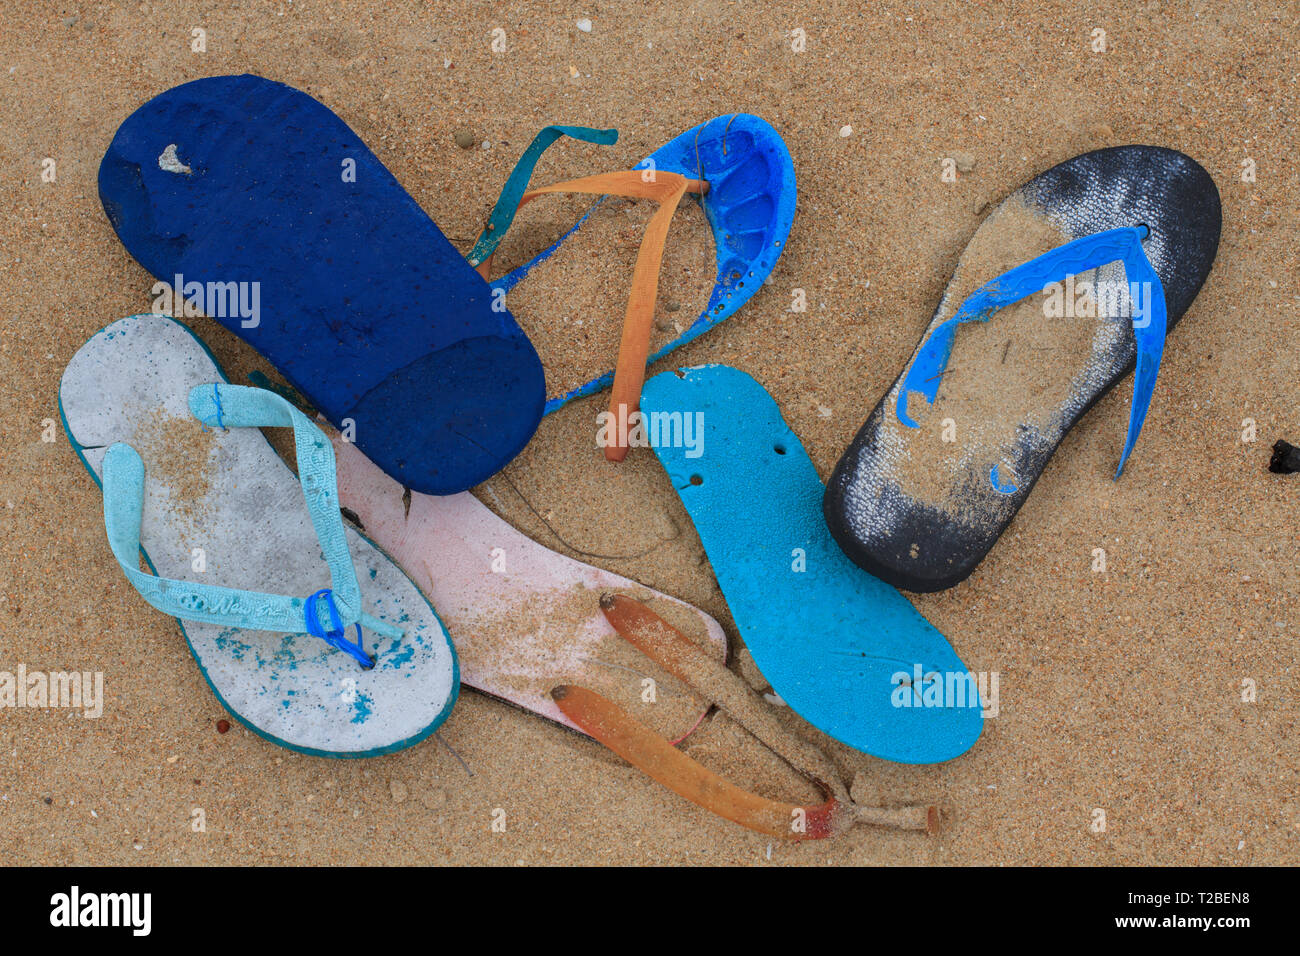 Plastic Flip flops collected on a beach on the West coast of Cape York Australia background.   Flip flops or thongs have washed off fishing vessels op - Stock Image